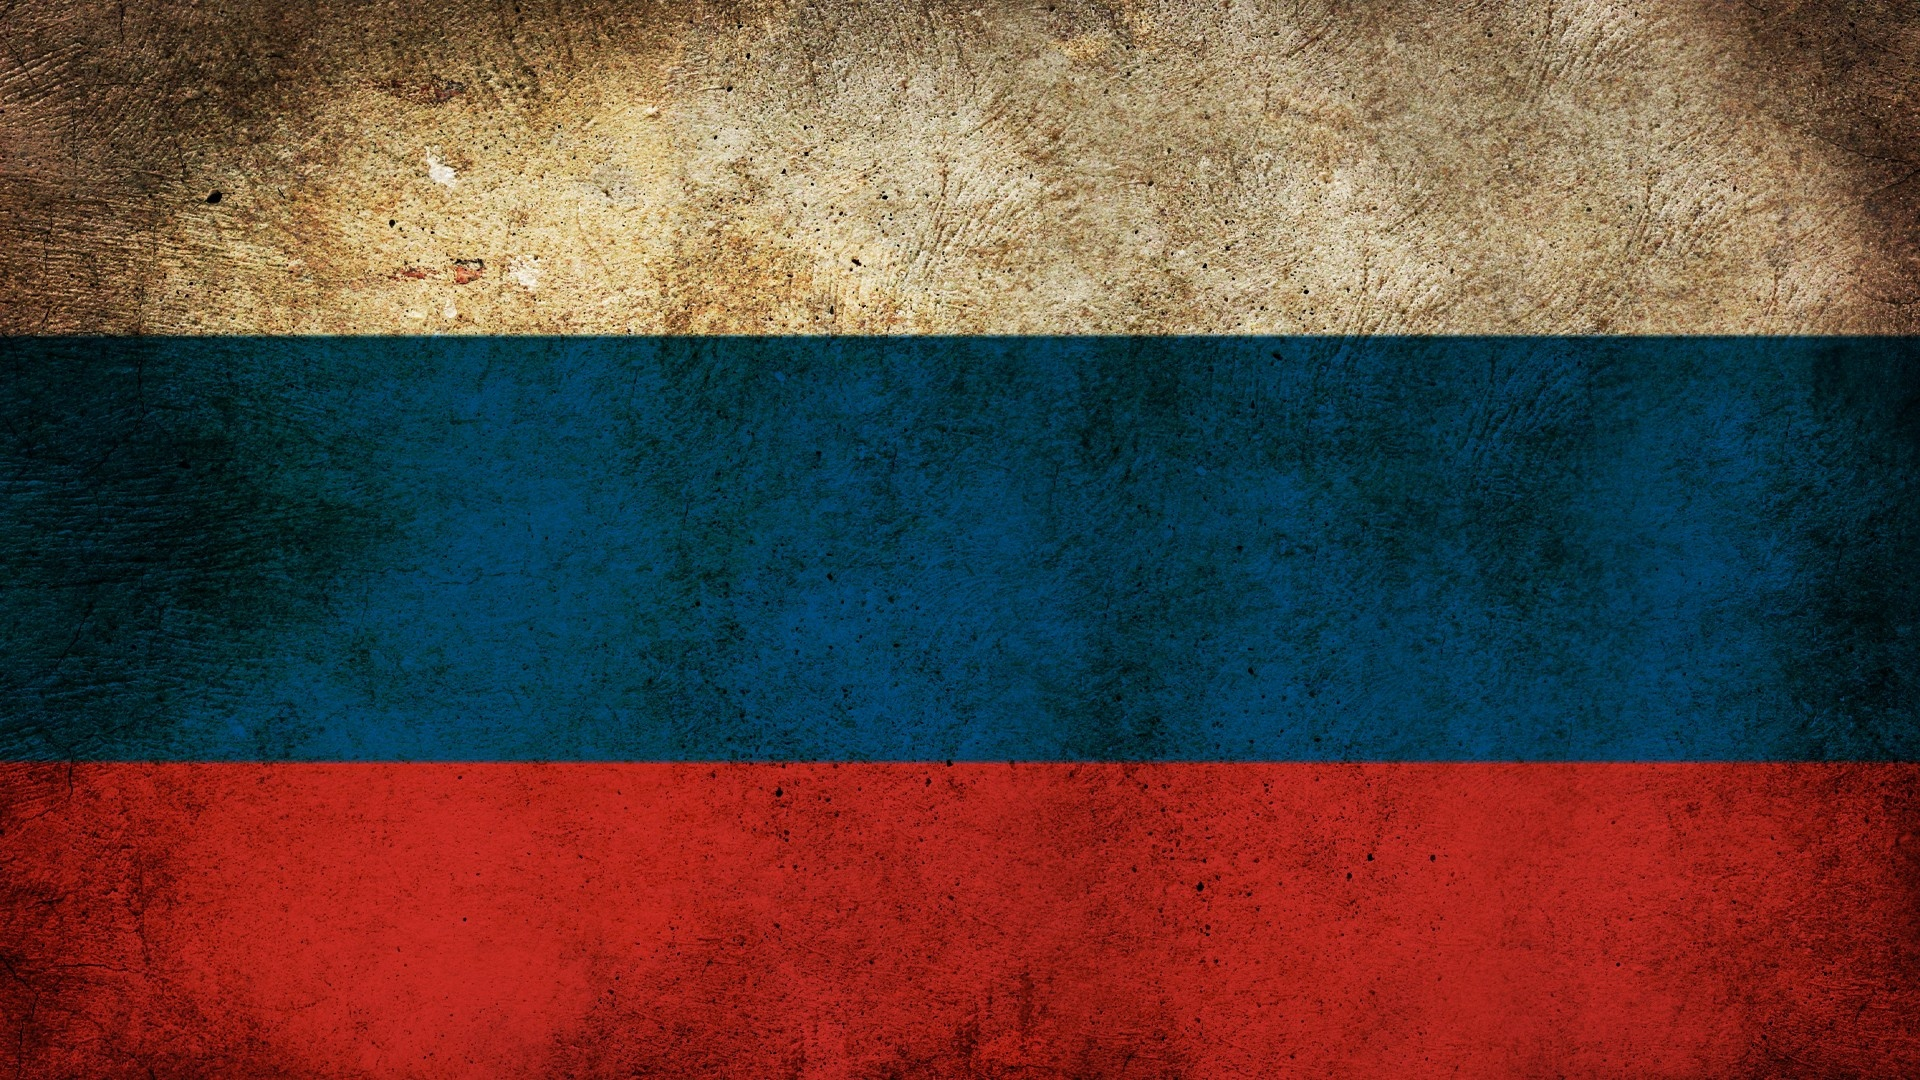 Download wallpaper 1920x1080 flag, texture, background, russia ...